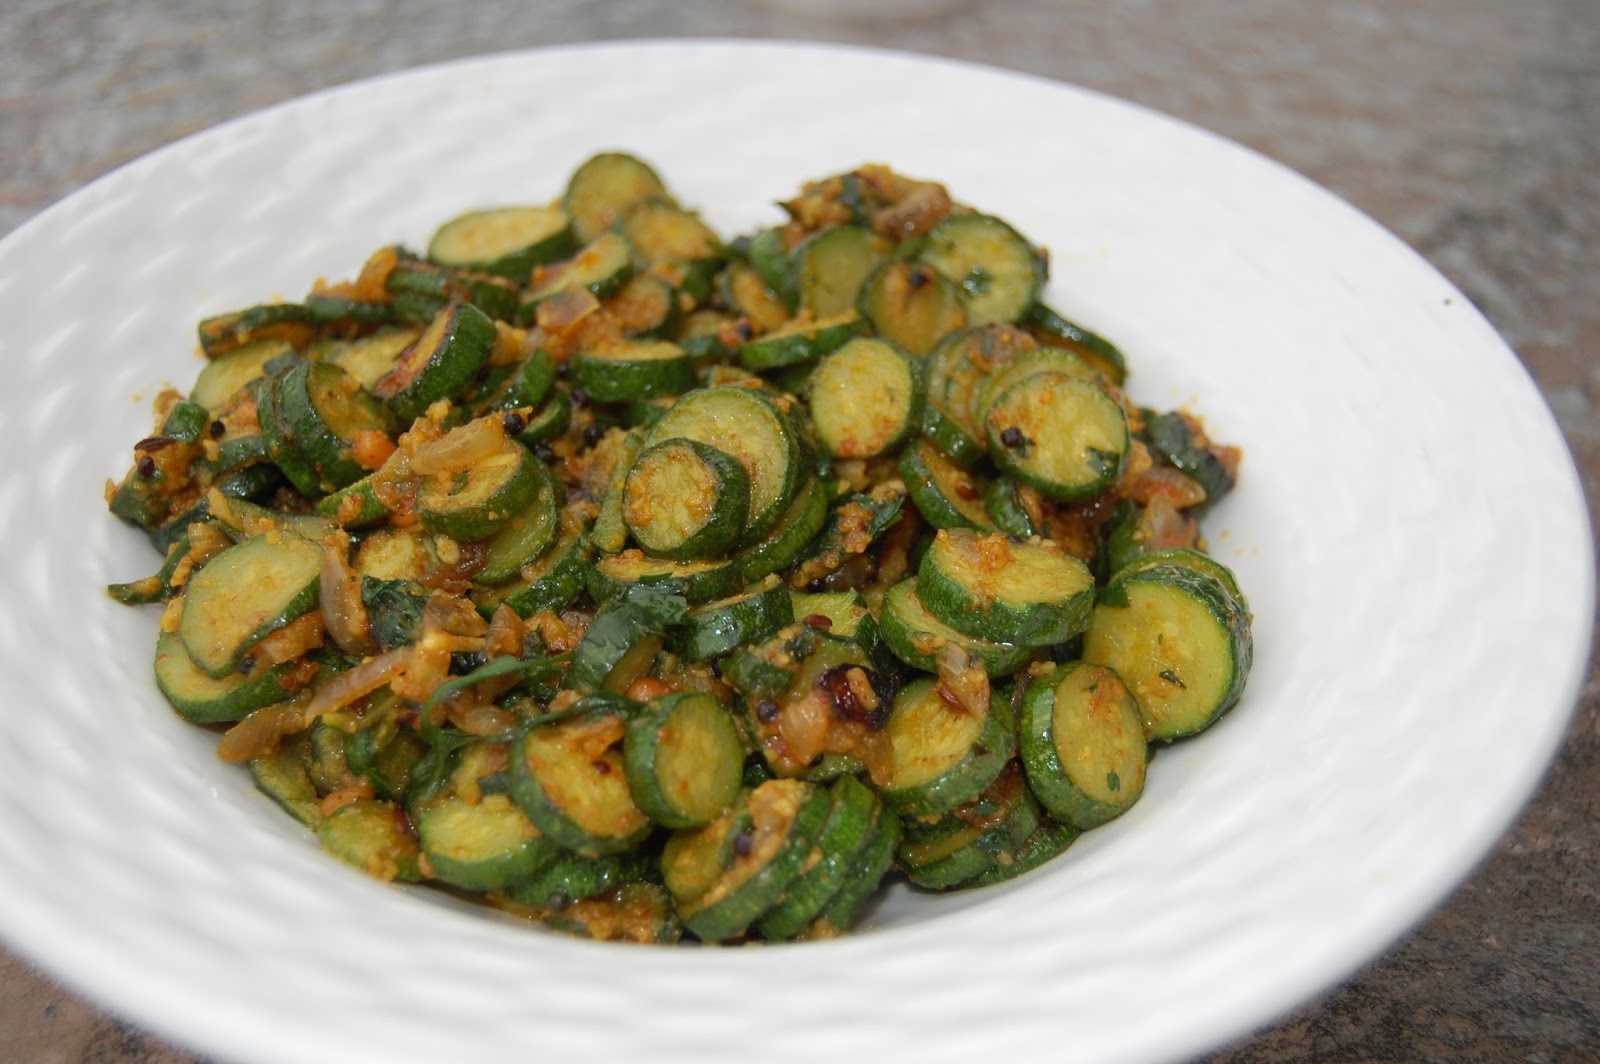 Mushy Zucchini Recipe